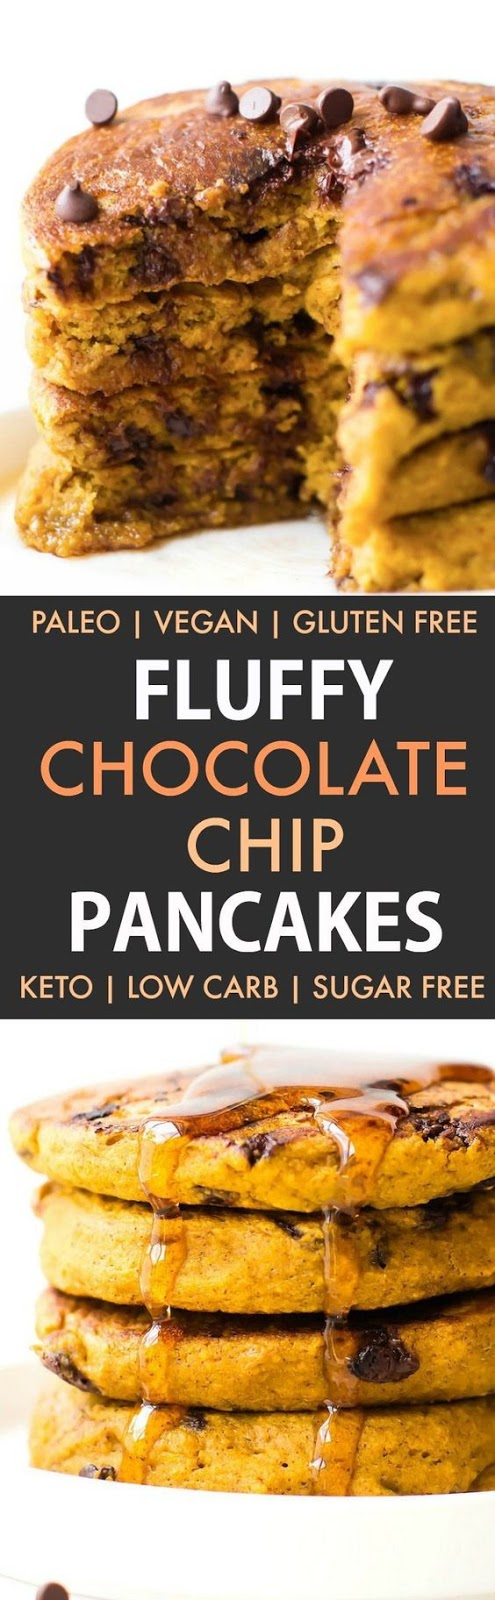 Fluffy Low Carb Keto Pancakes (Paleo, Vegan)